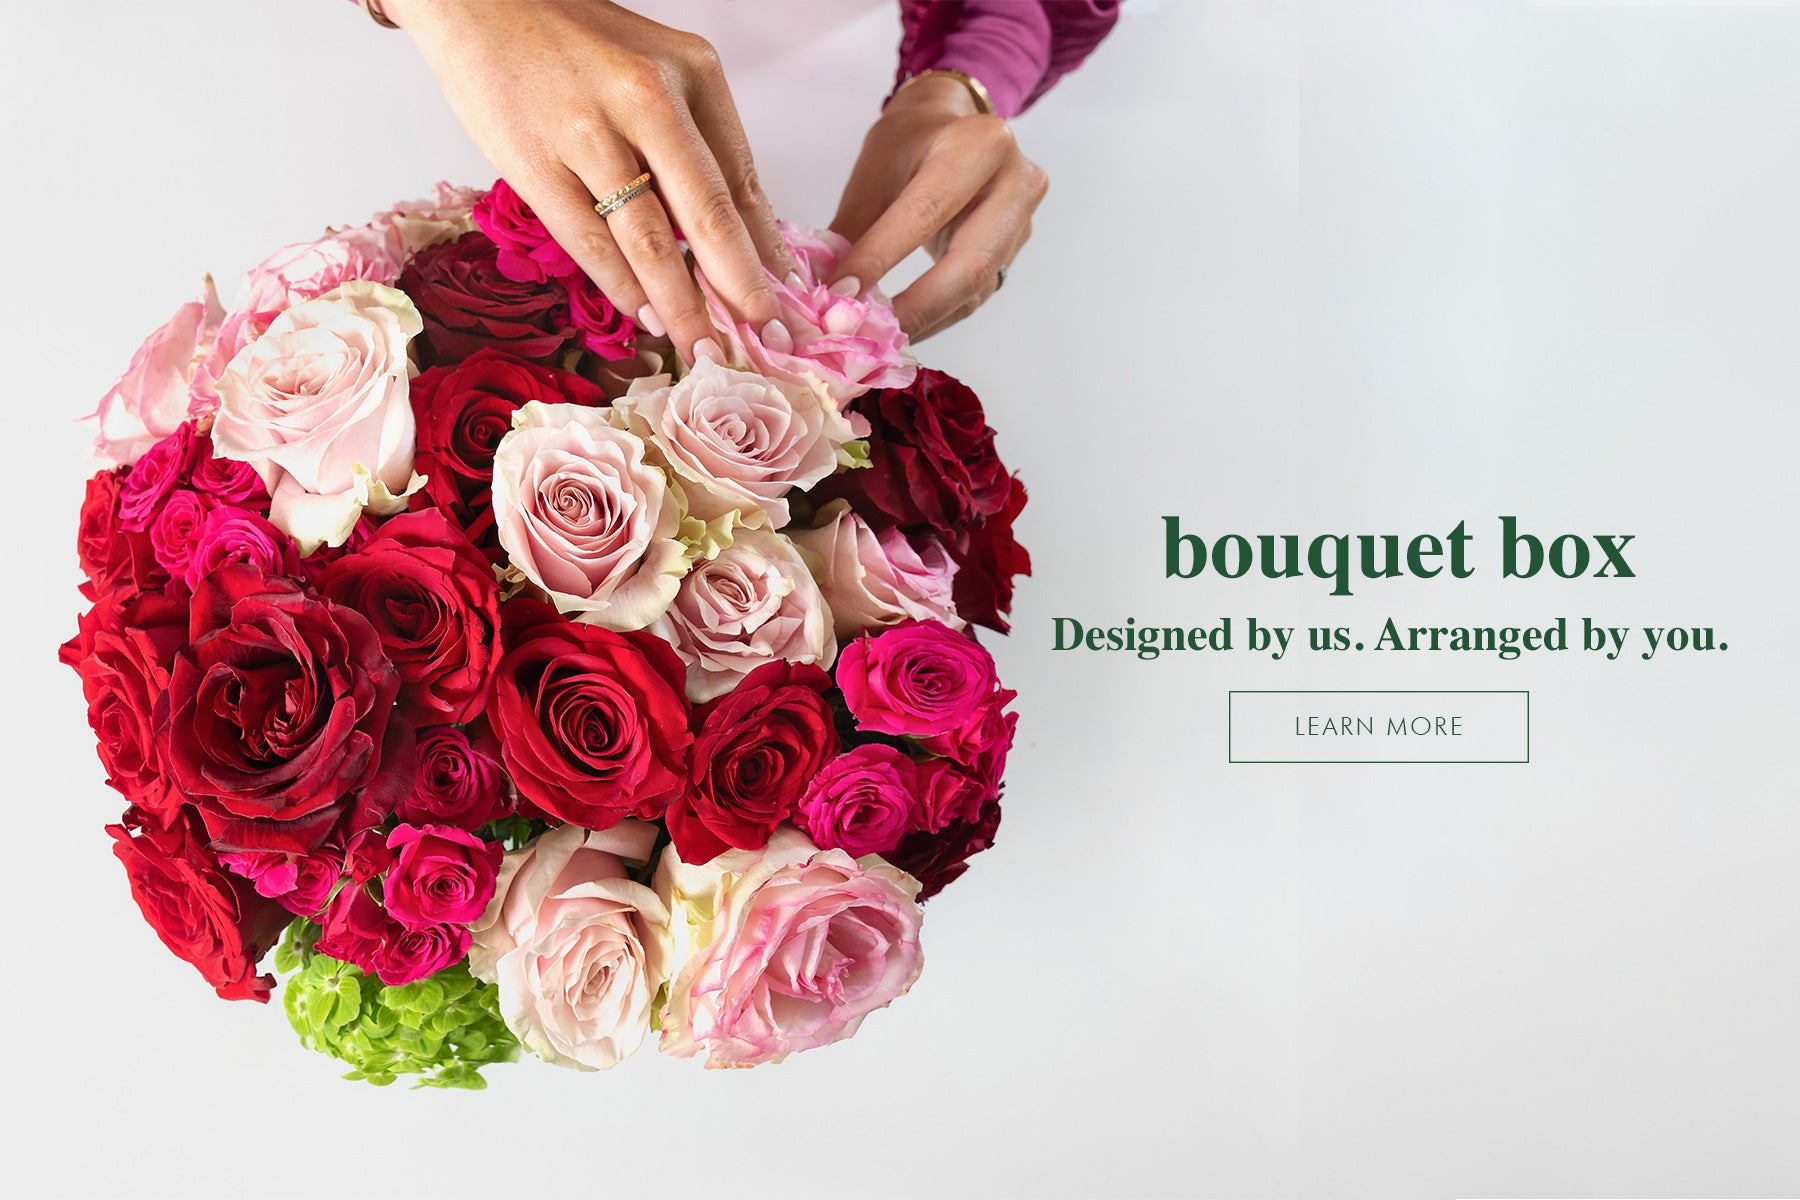 Learn more about bouquet box